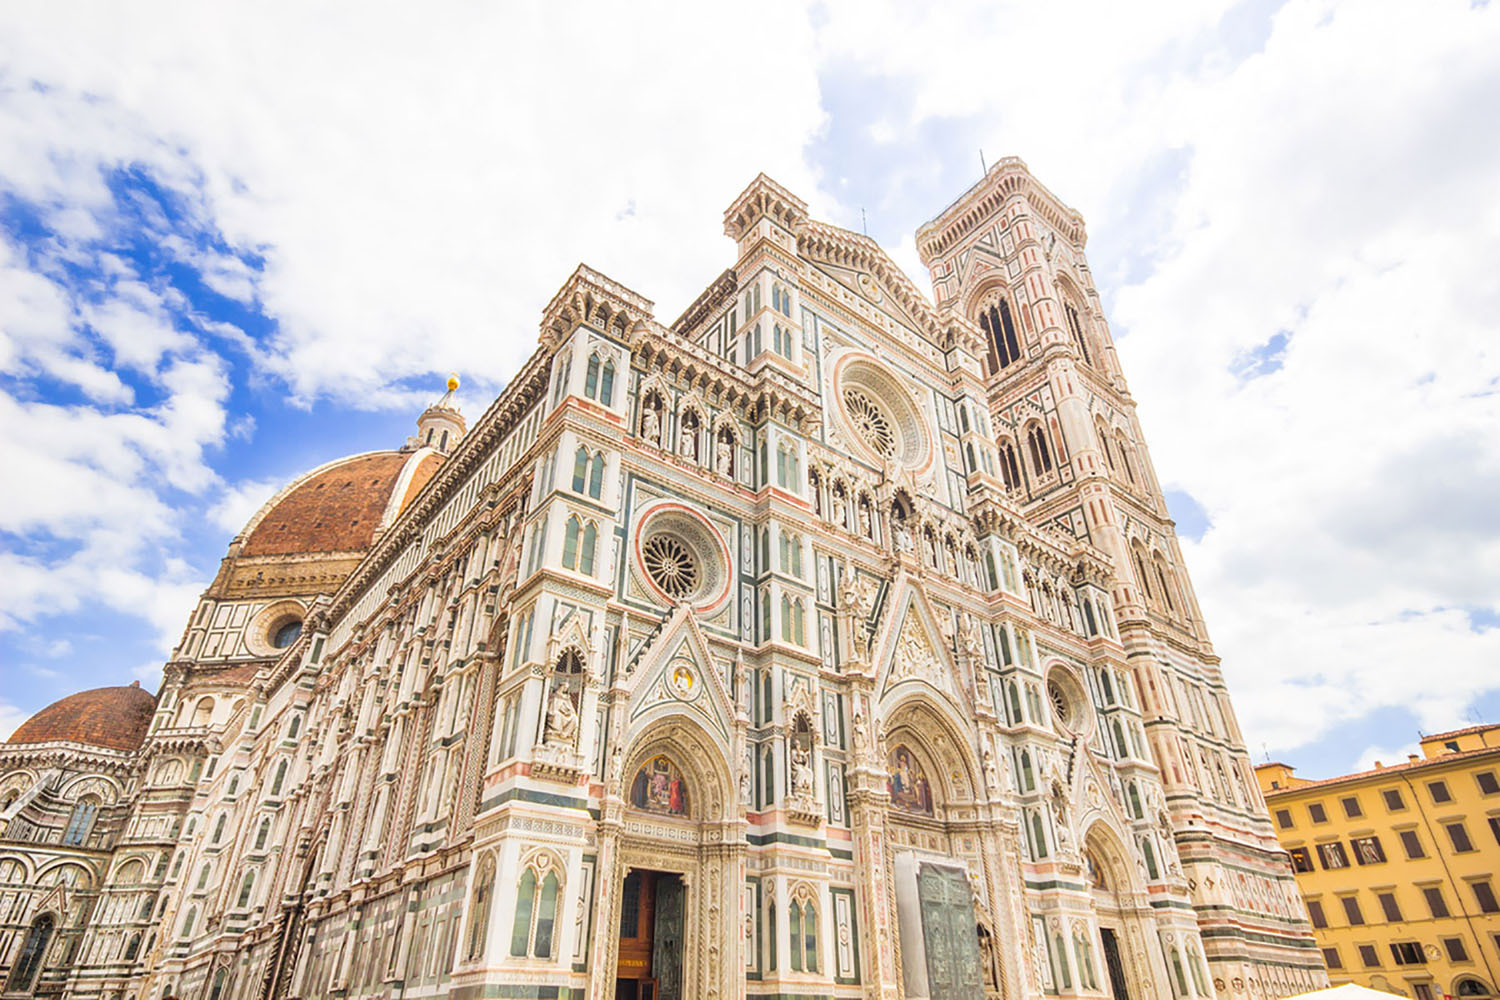 The facade of the Florence Cathedral.